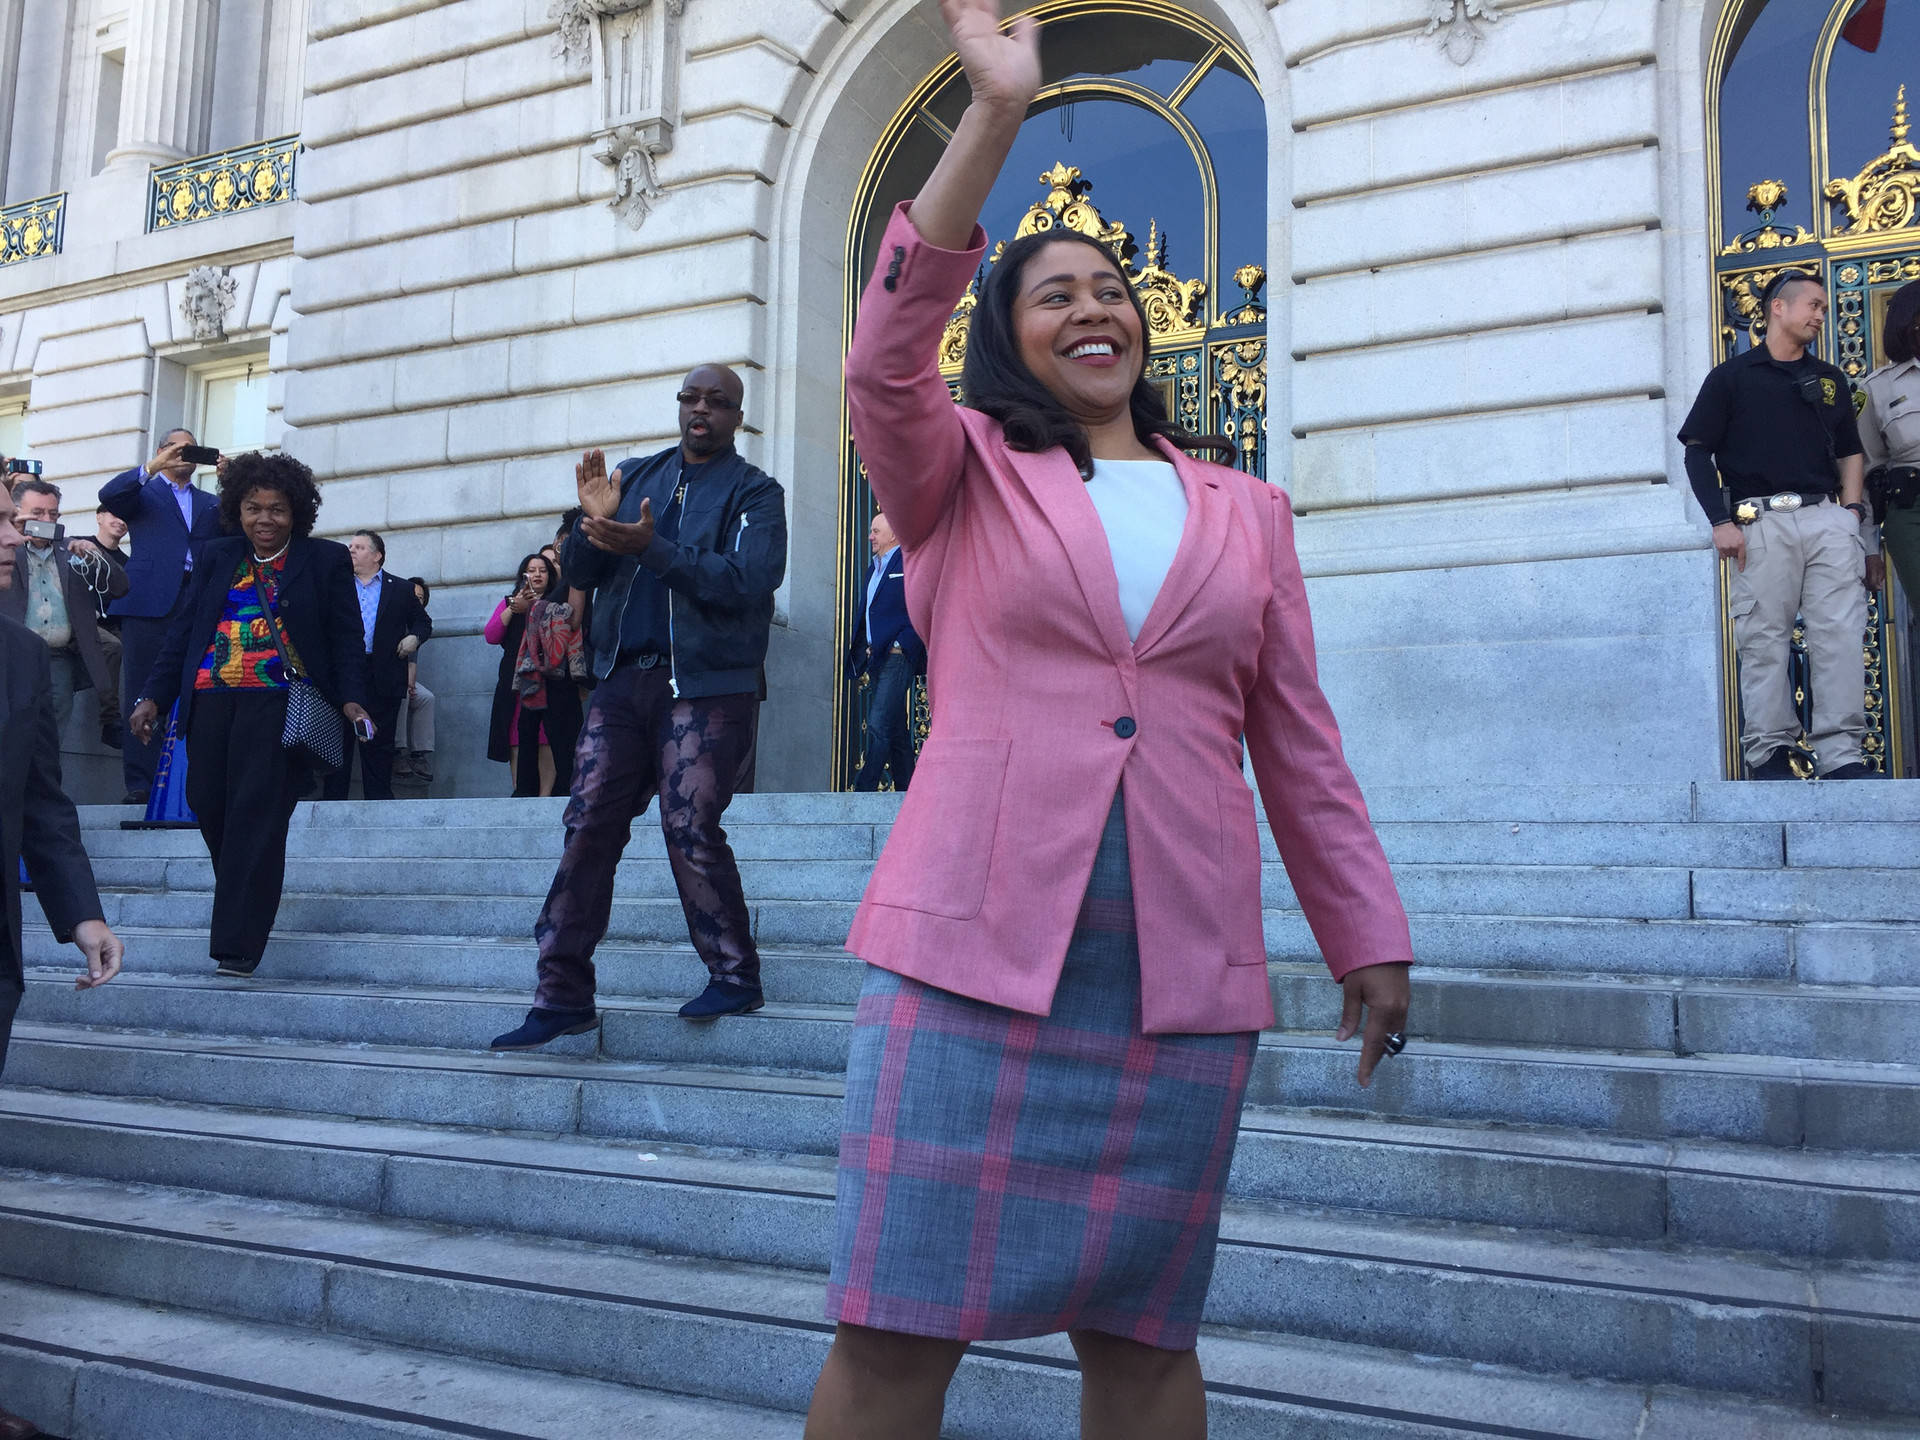 London Breed speaks to reporters and supporters from the steps of San Francisco's City Hall after Mark Leno conceded the race for San Francisco mayor on June 13, 2018. Ryan Levi/KQED